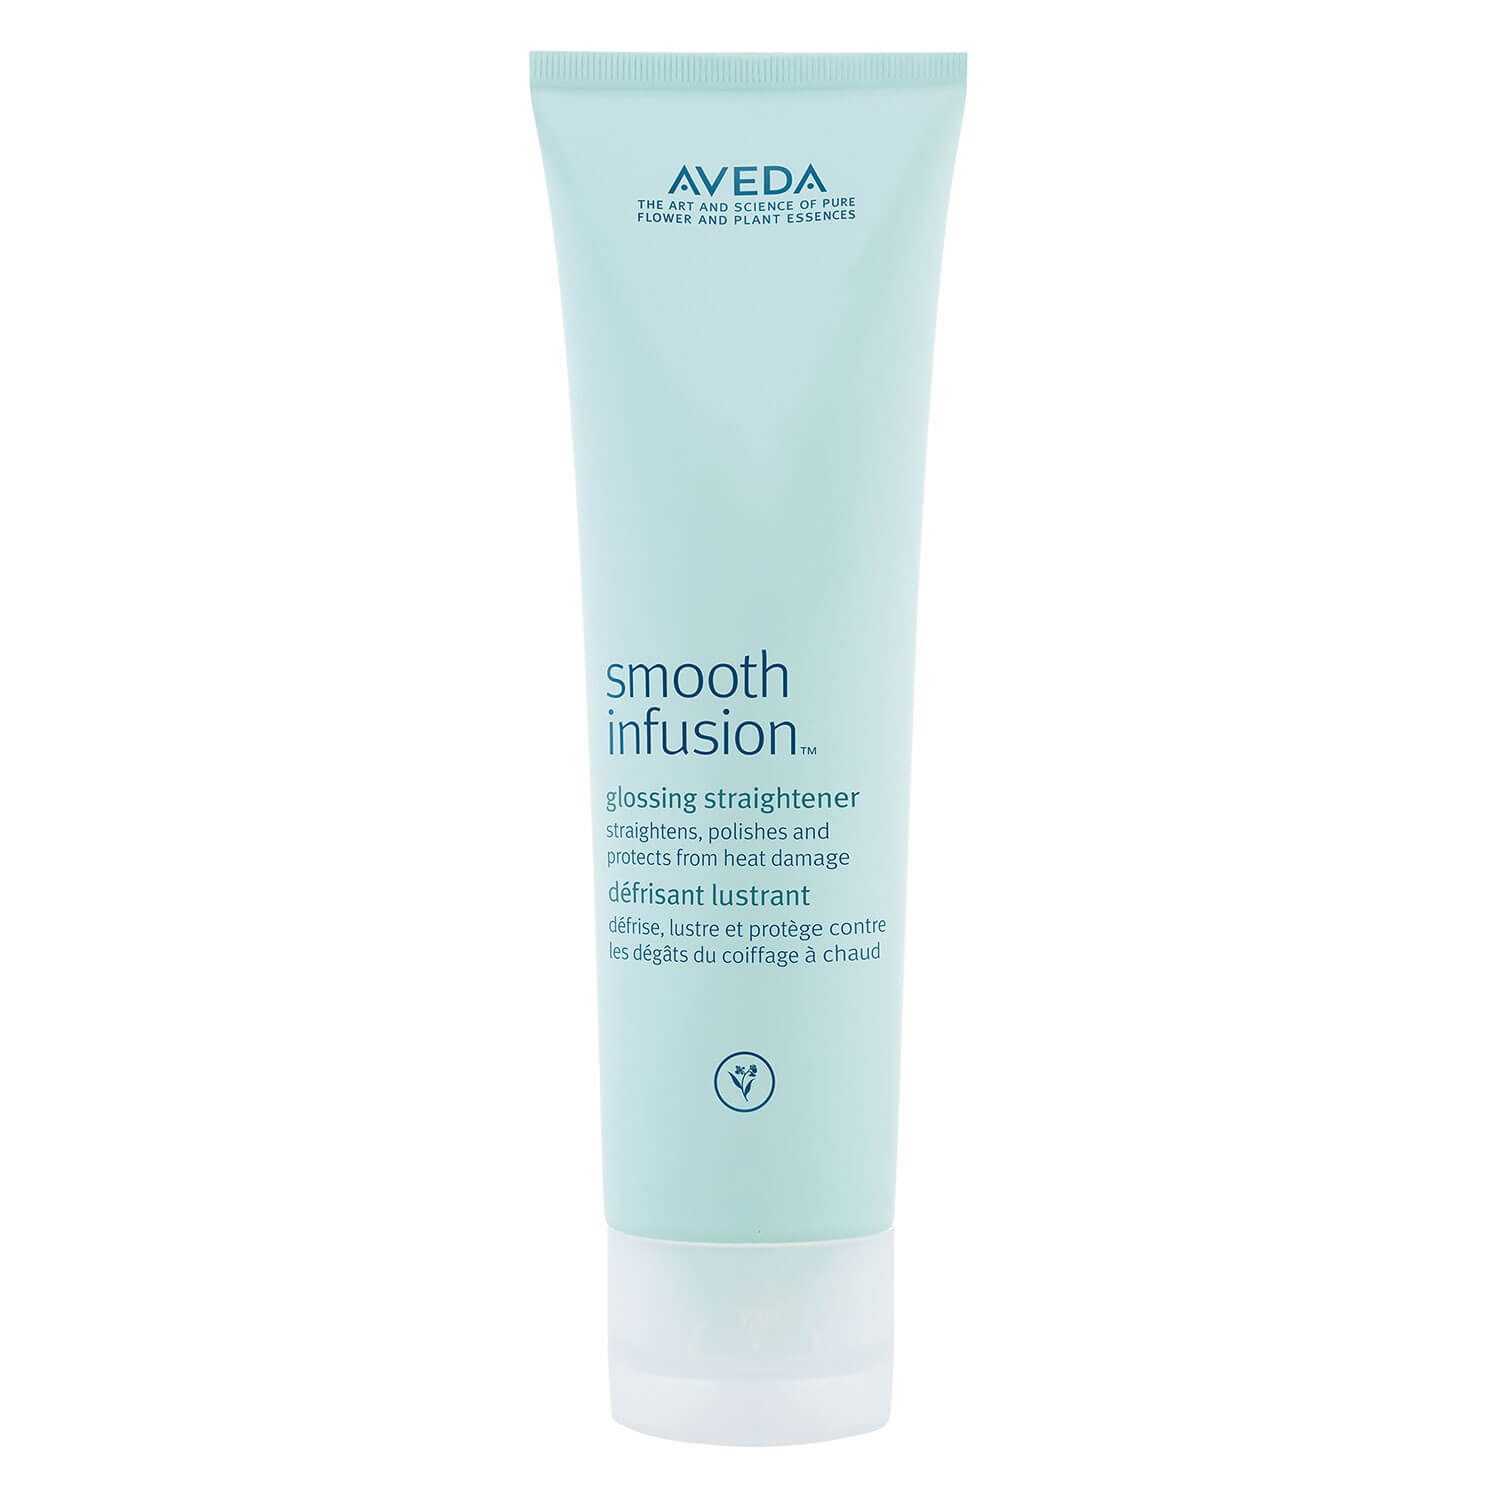 smooth infusion - glossing straightener